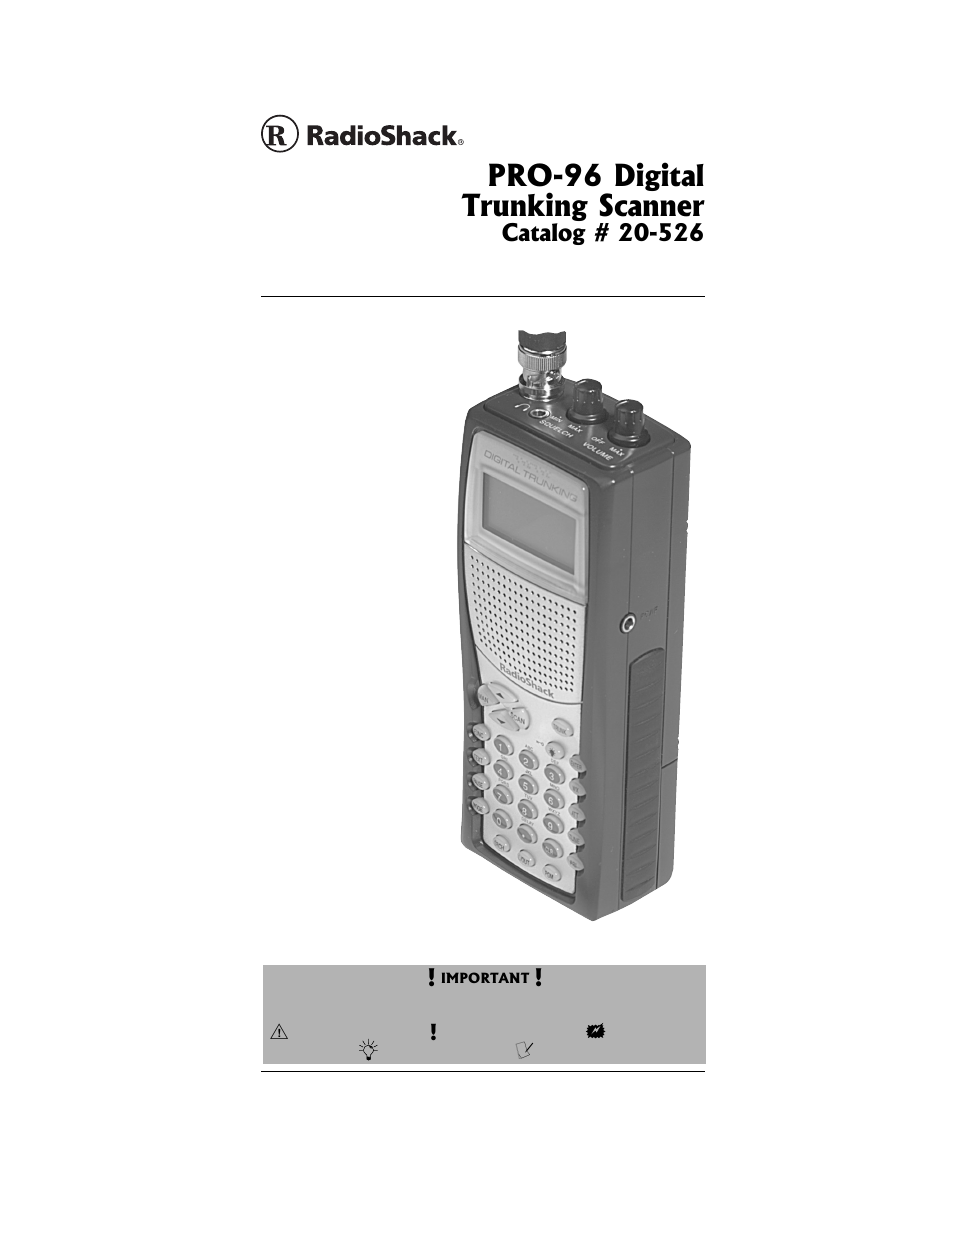 radio shack pro 96 user manual 124 pages rh manualsdir com Radio Shack Pro 2.0 Radio Shack Pro 205